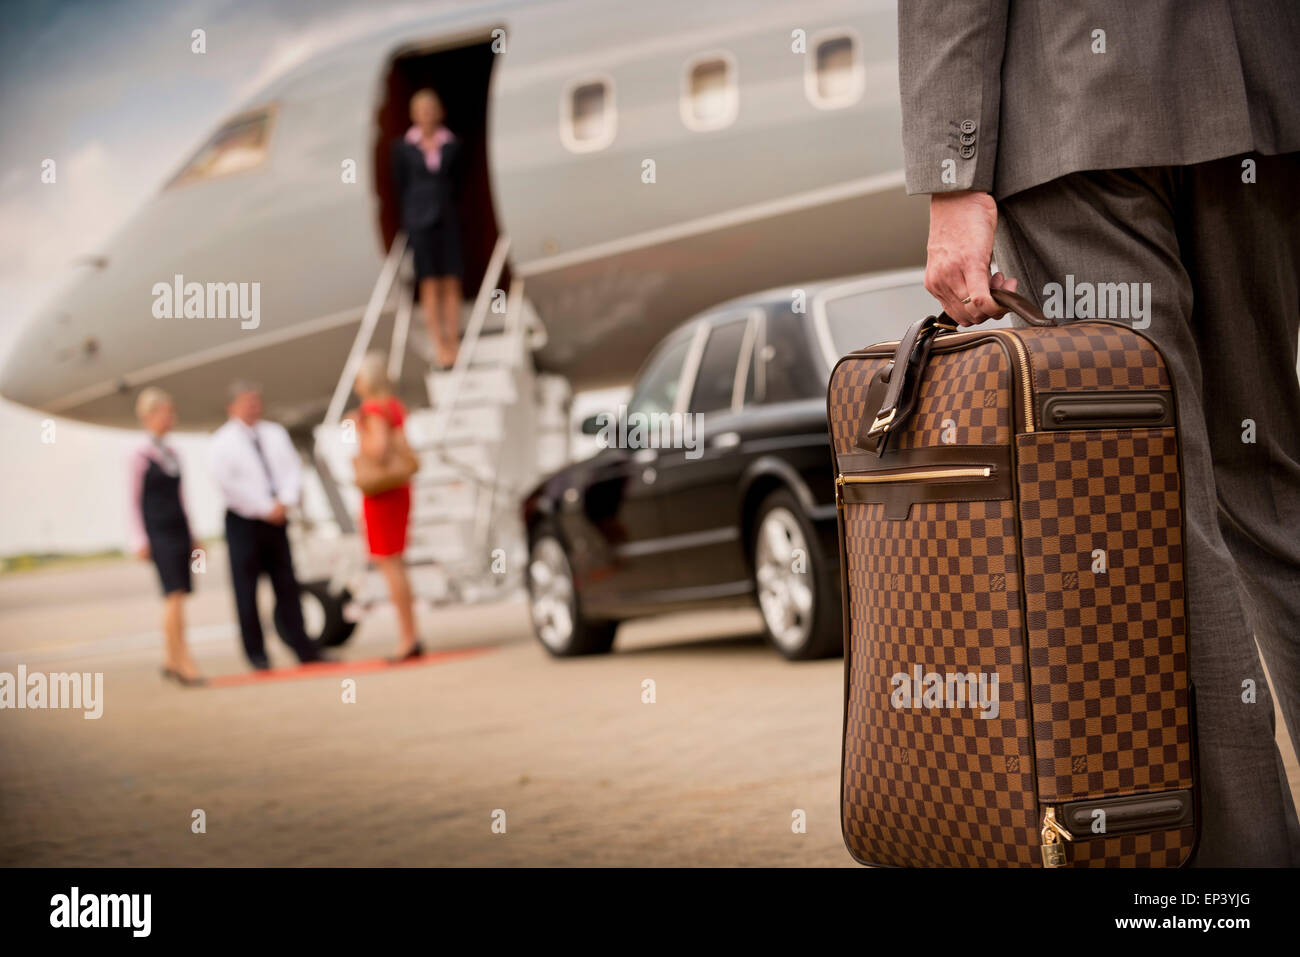 Suitcase being carried to a private airplane as passenger embarks flight - Stock Image